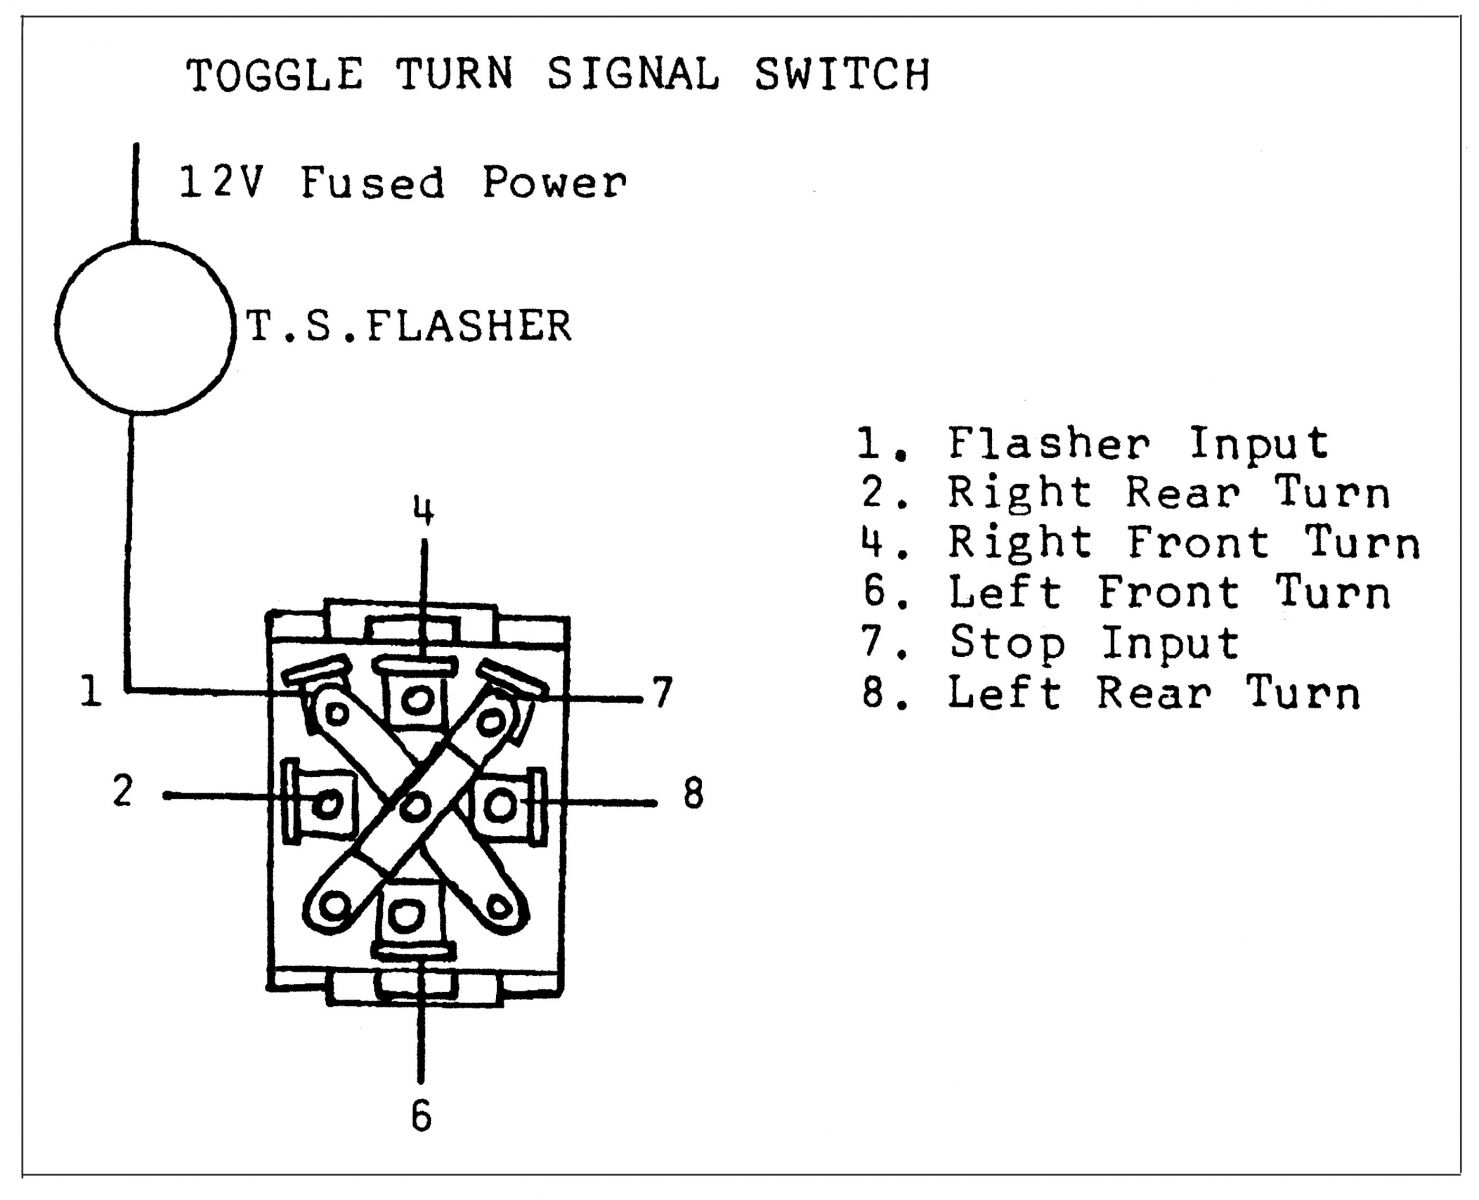 Turn Signals For Early Hot Rods   Hotrod Hotline - On Off On Toggle Switch Wiring Diagram